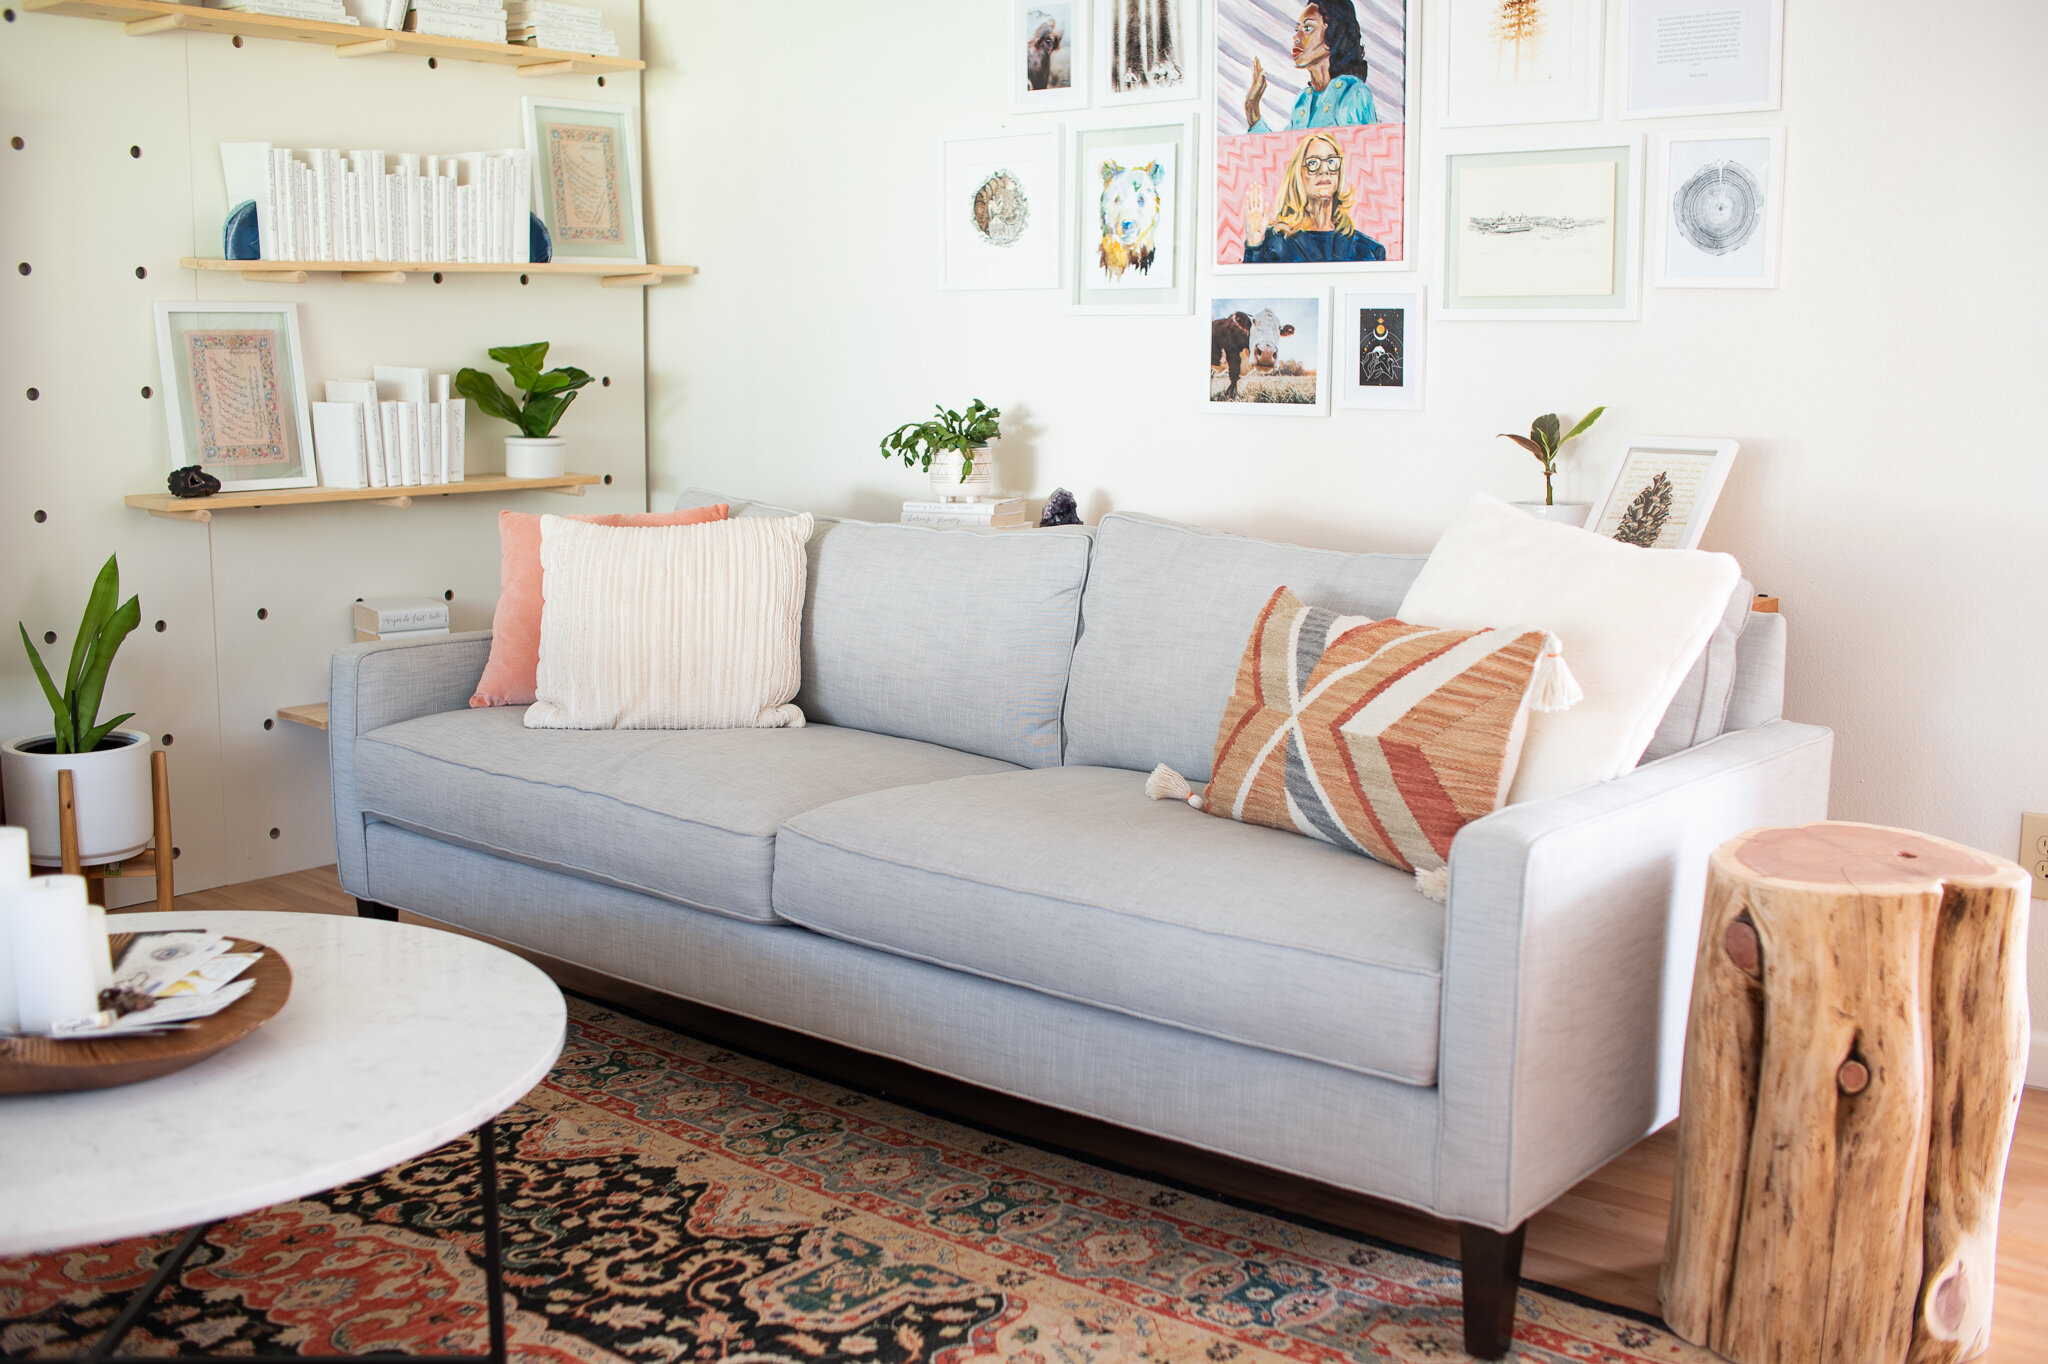 Sofas can include all sorts of different chemicals, from flame retardants to using foam made from petroleum. When it's time to renew your sofa opt for one made in county, by hand, using real materials including solid wood, steel springs, copy foam, and cotton. Minimuzing toxins found in ones home can make a huge impact on health and wellness.